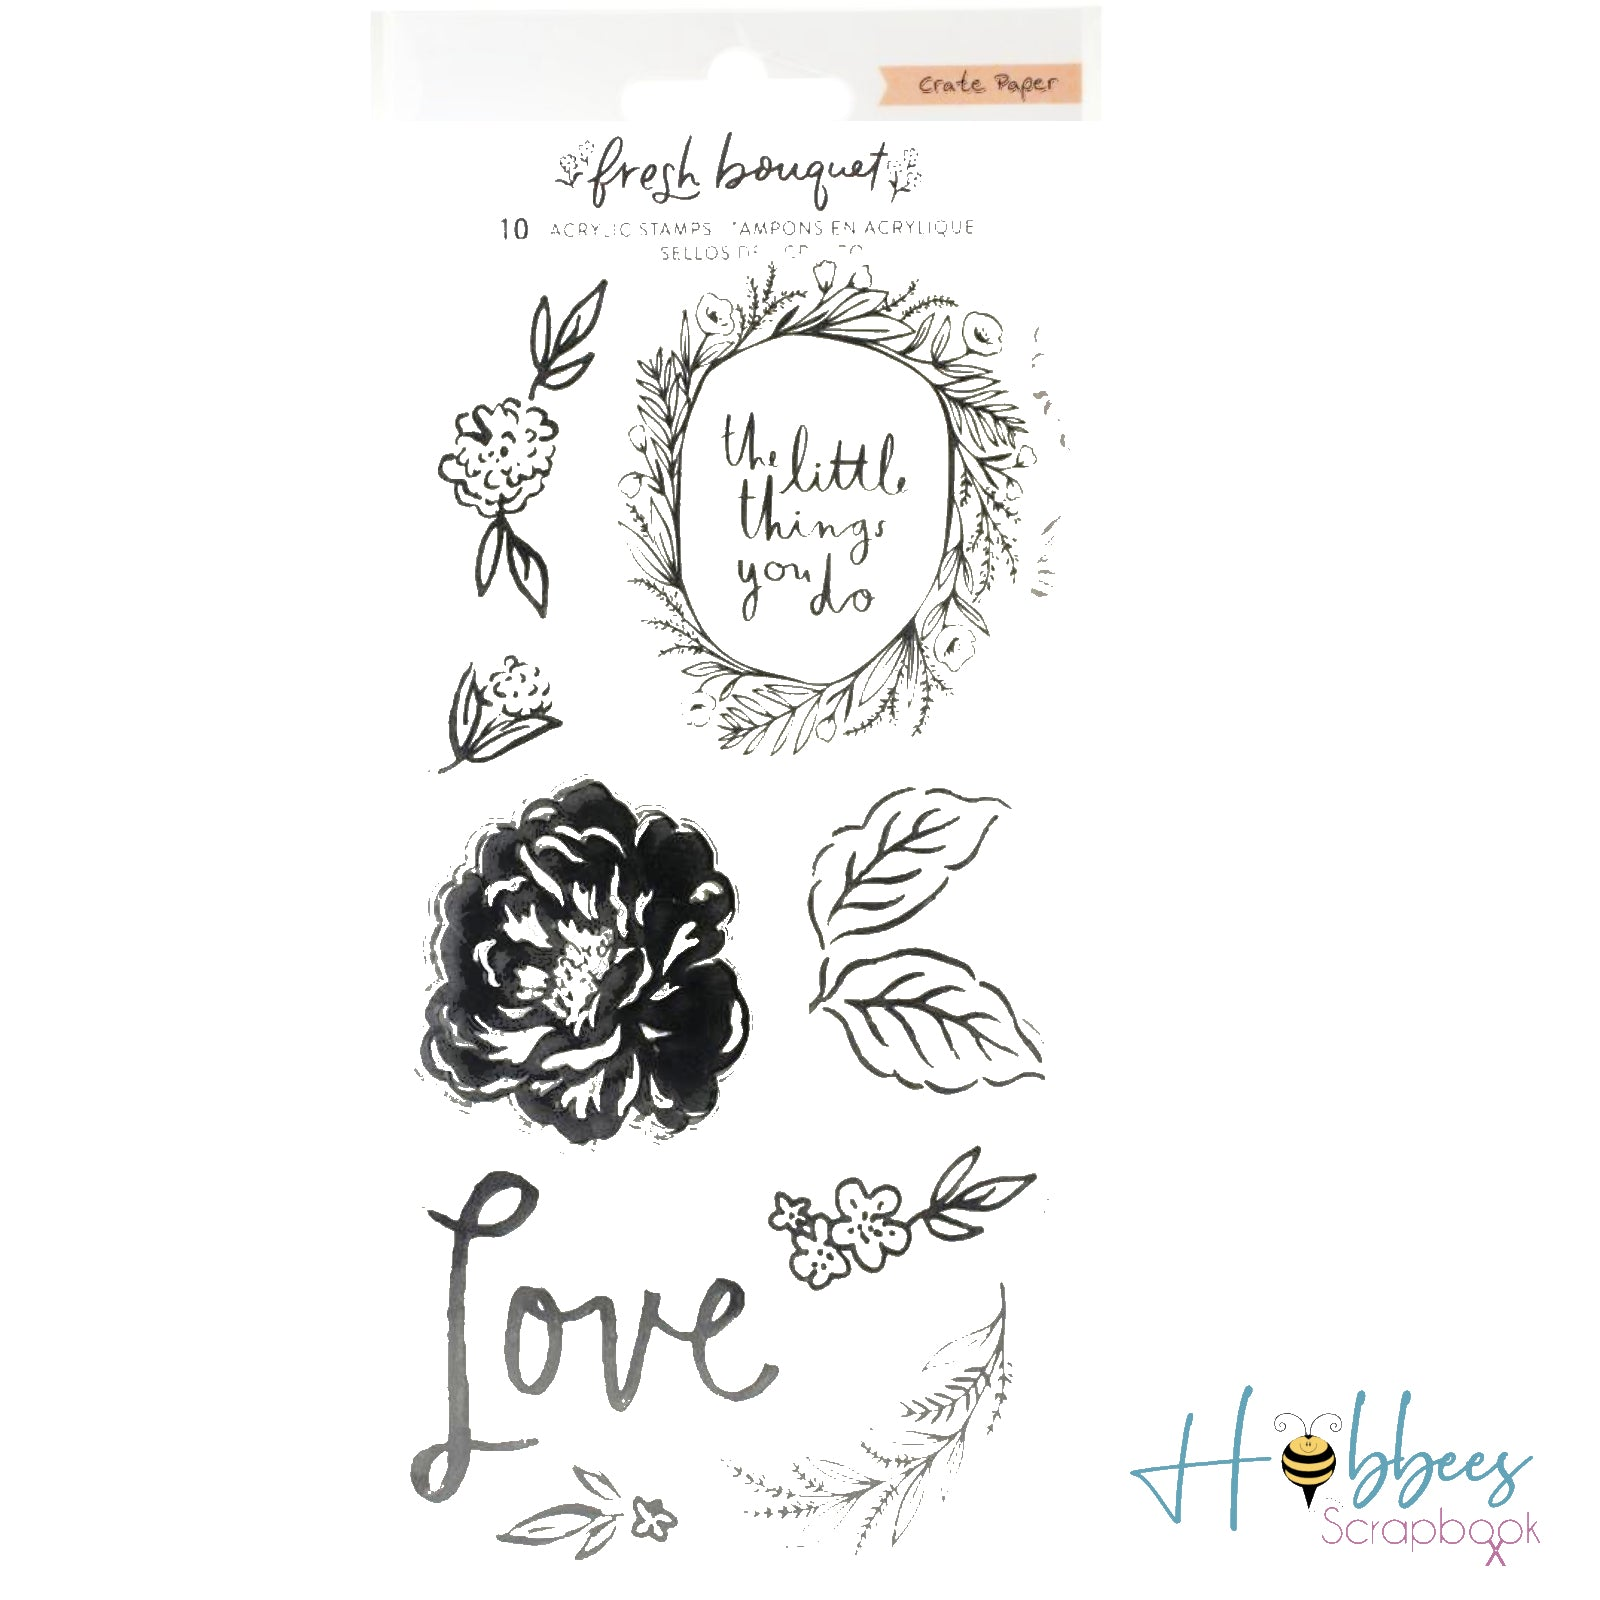 Fresh Bouquet Acrylic Clear Stamps / Sellos de Polímero Ramillete Fresco